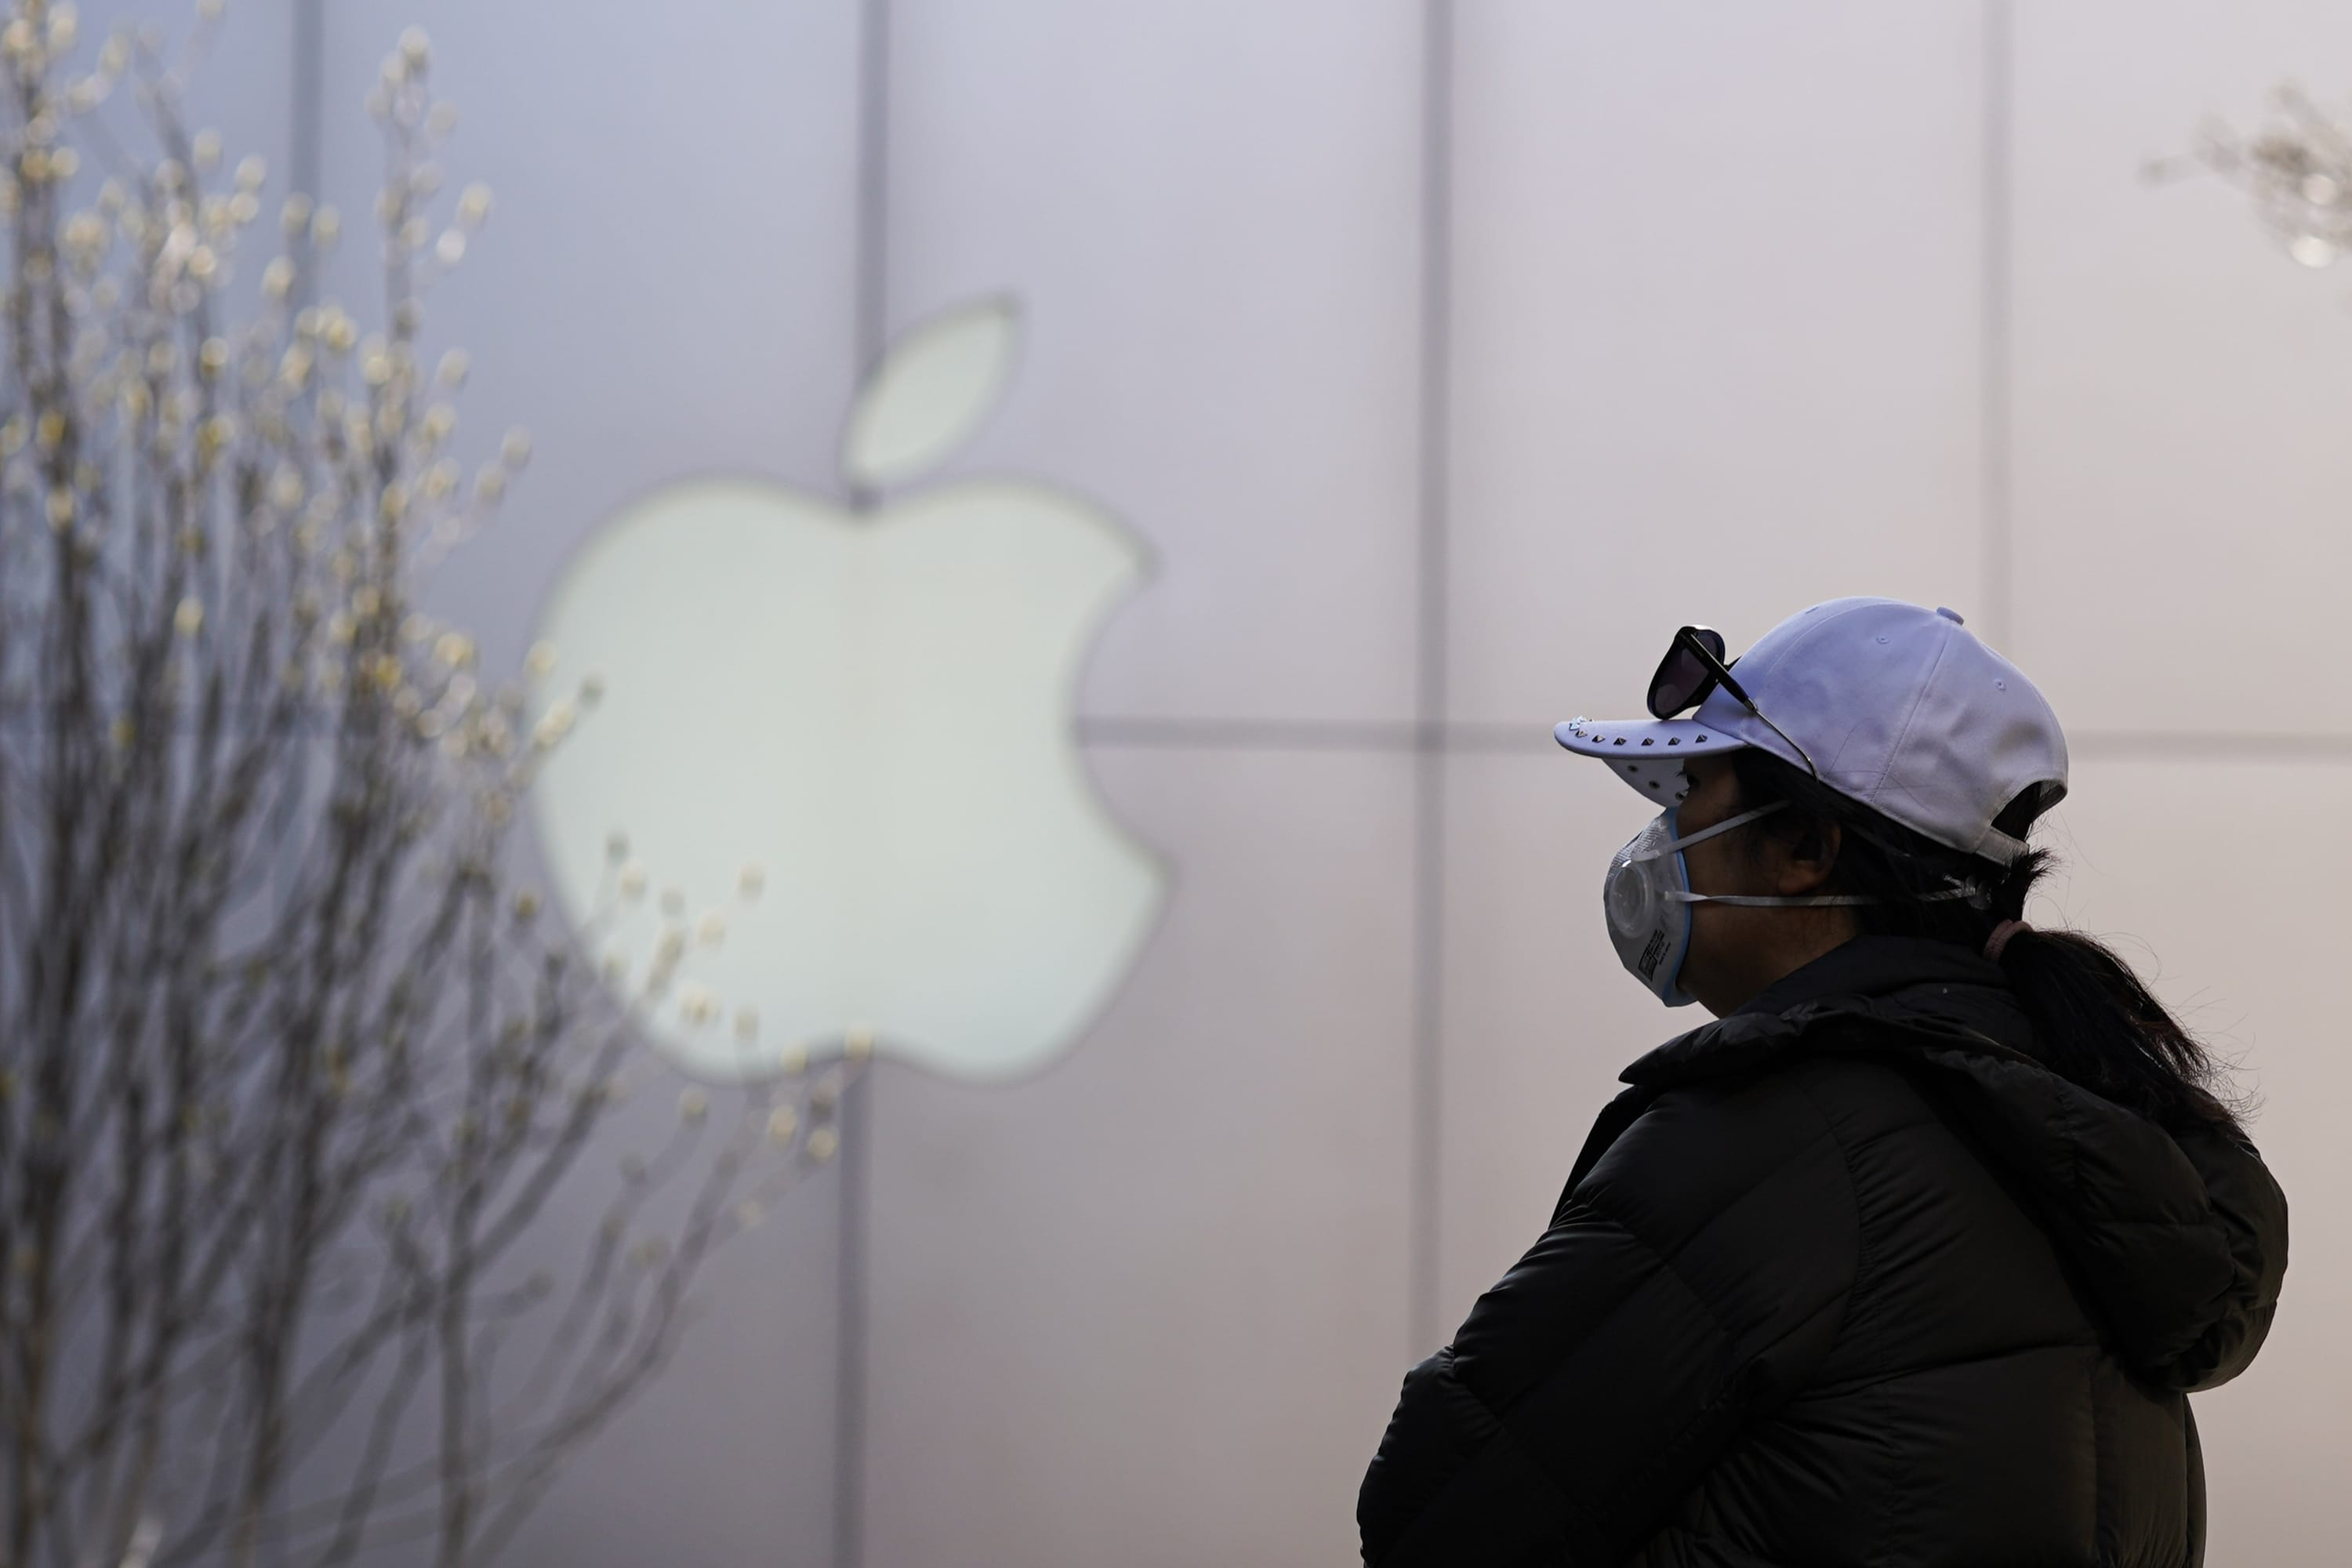 iPhone to your door: Chinese firms test super-fast phone delivery as coronavirus caution remains - CNBC